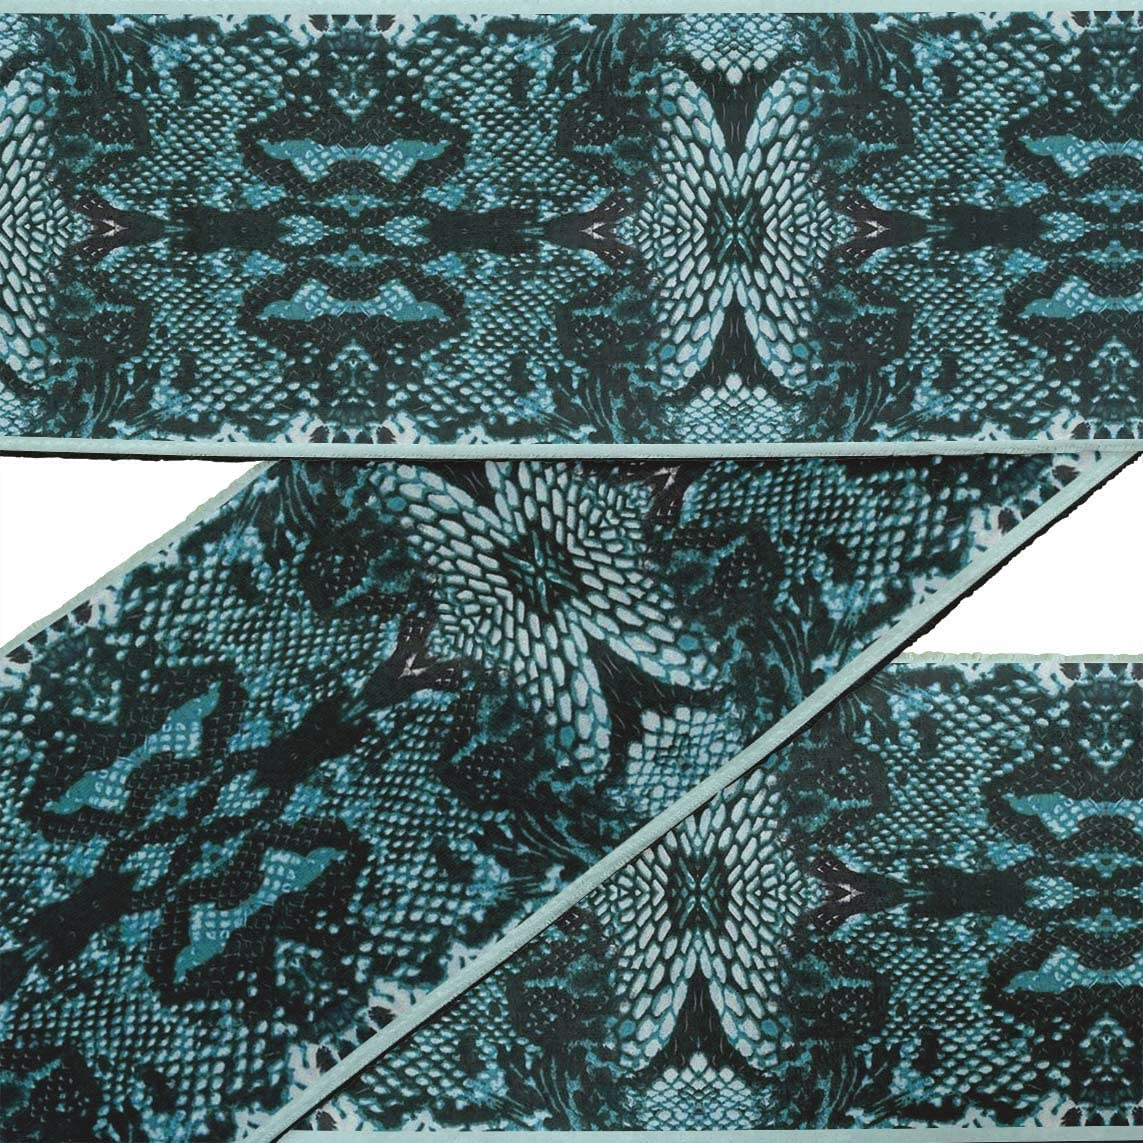 Fabric Lace Dressmaking DupionTrimTape Printed Sewing Lace By 9 Yard AS-48D